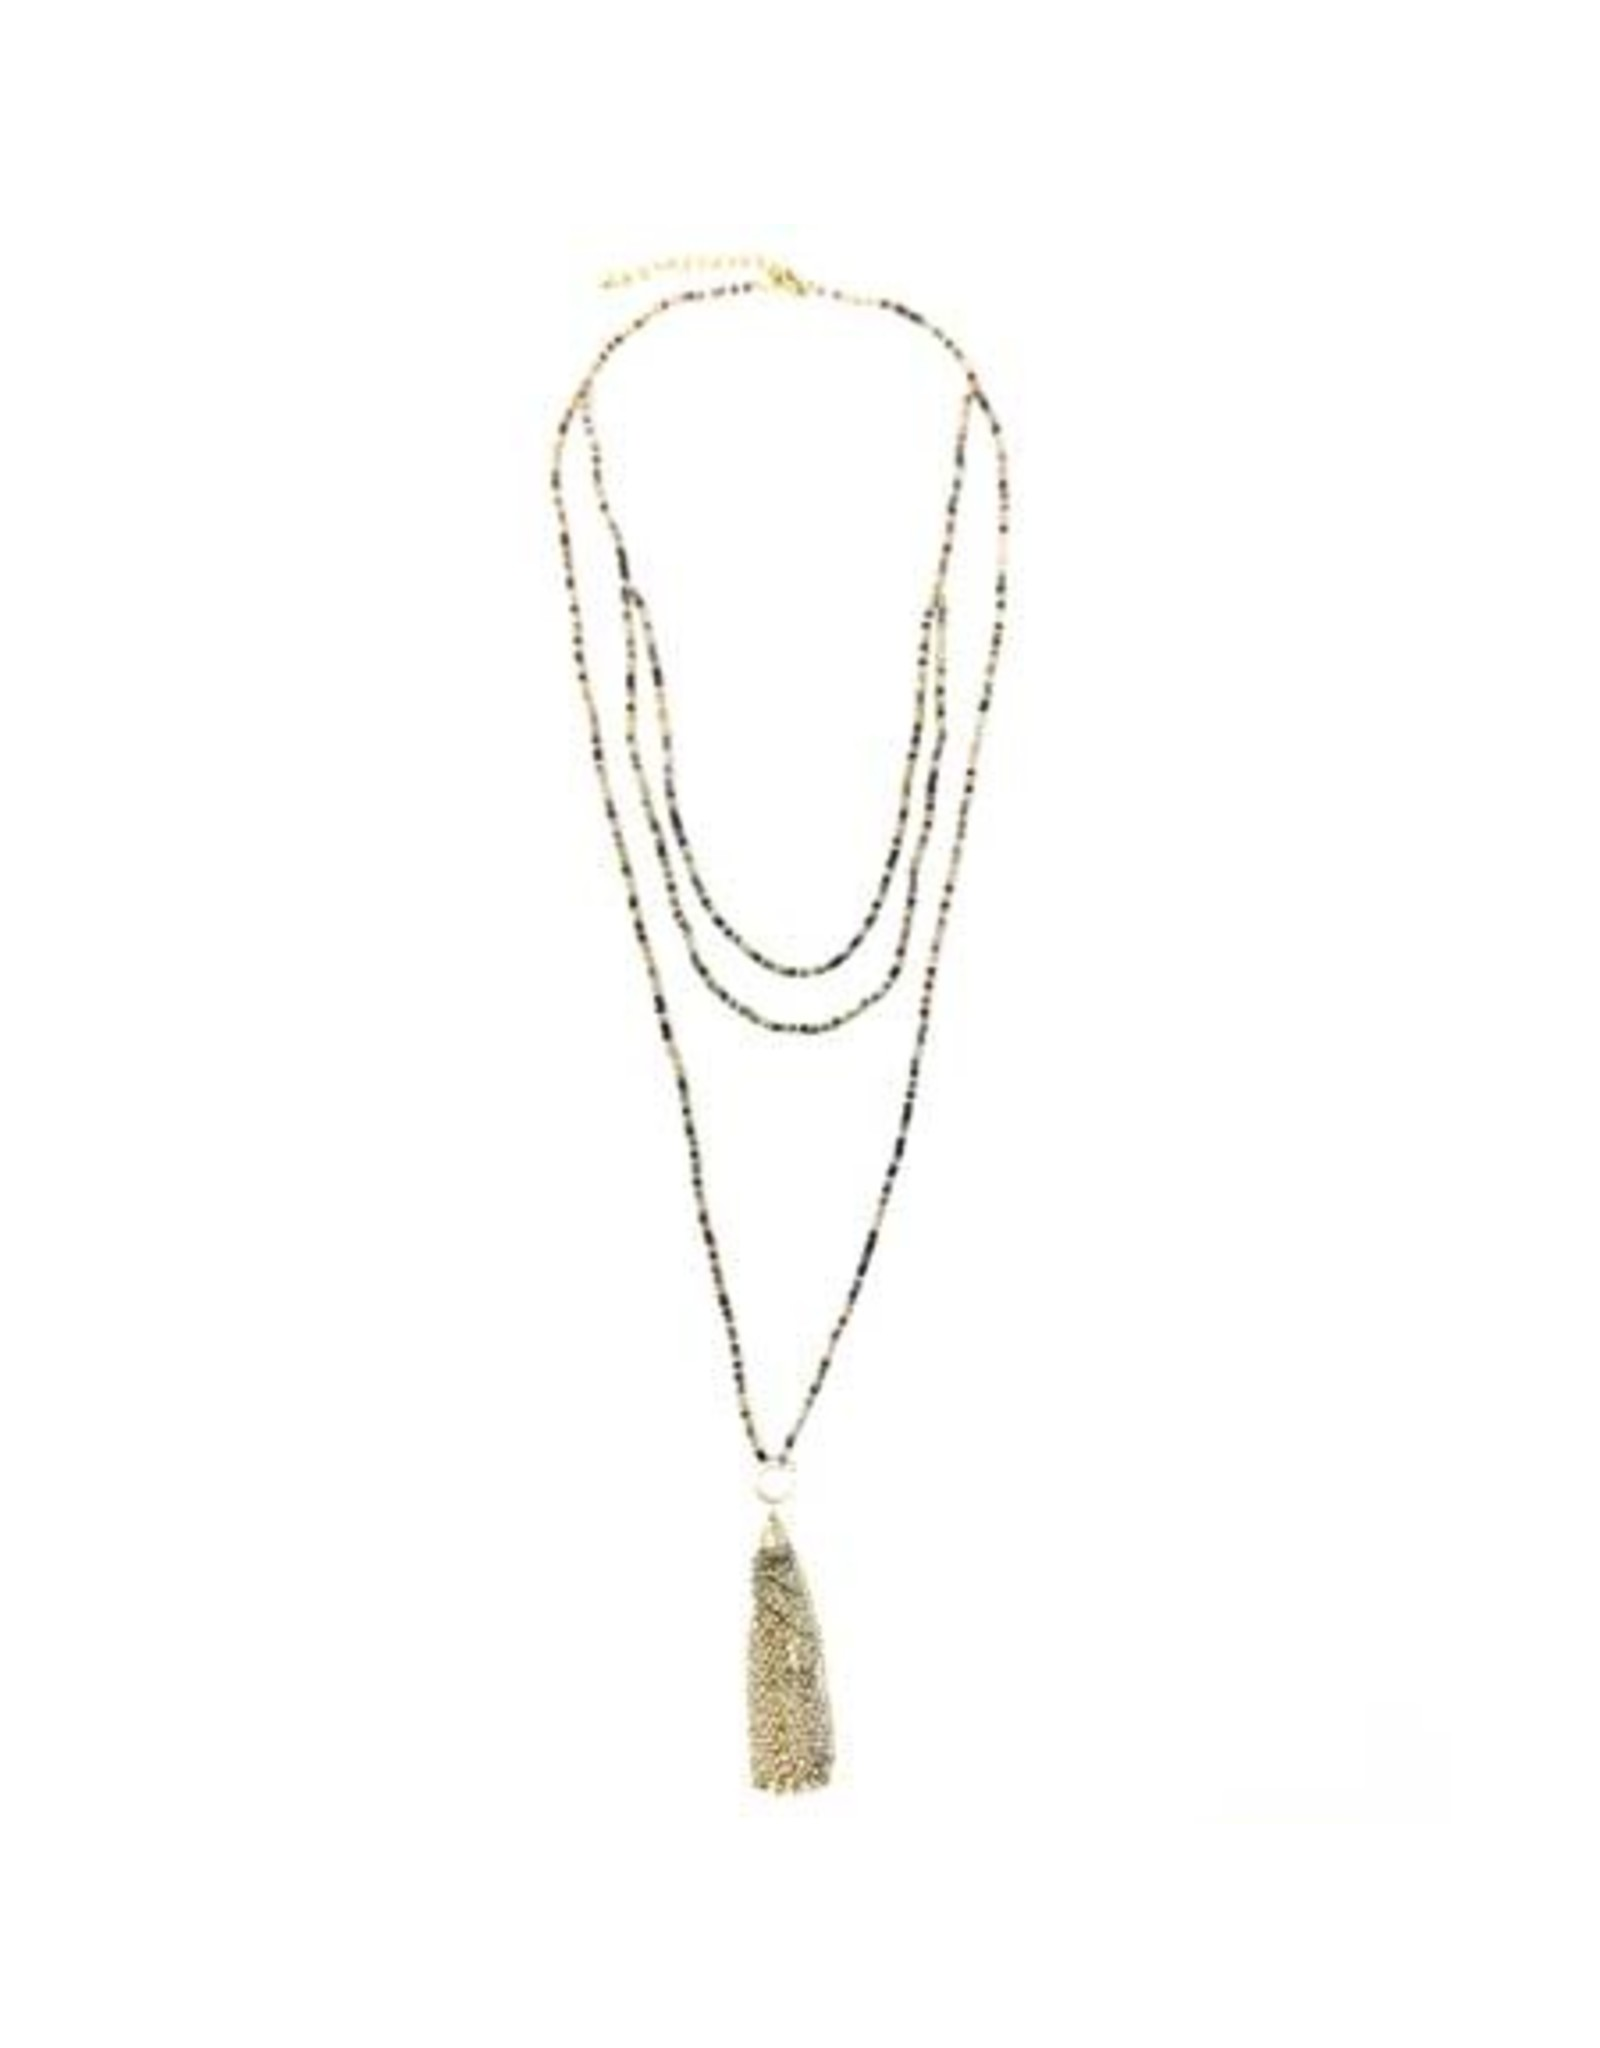 Ombre Metallic Tiered Necklace, India